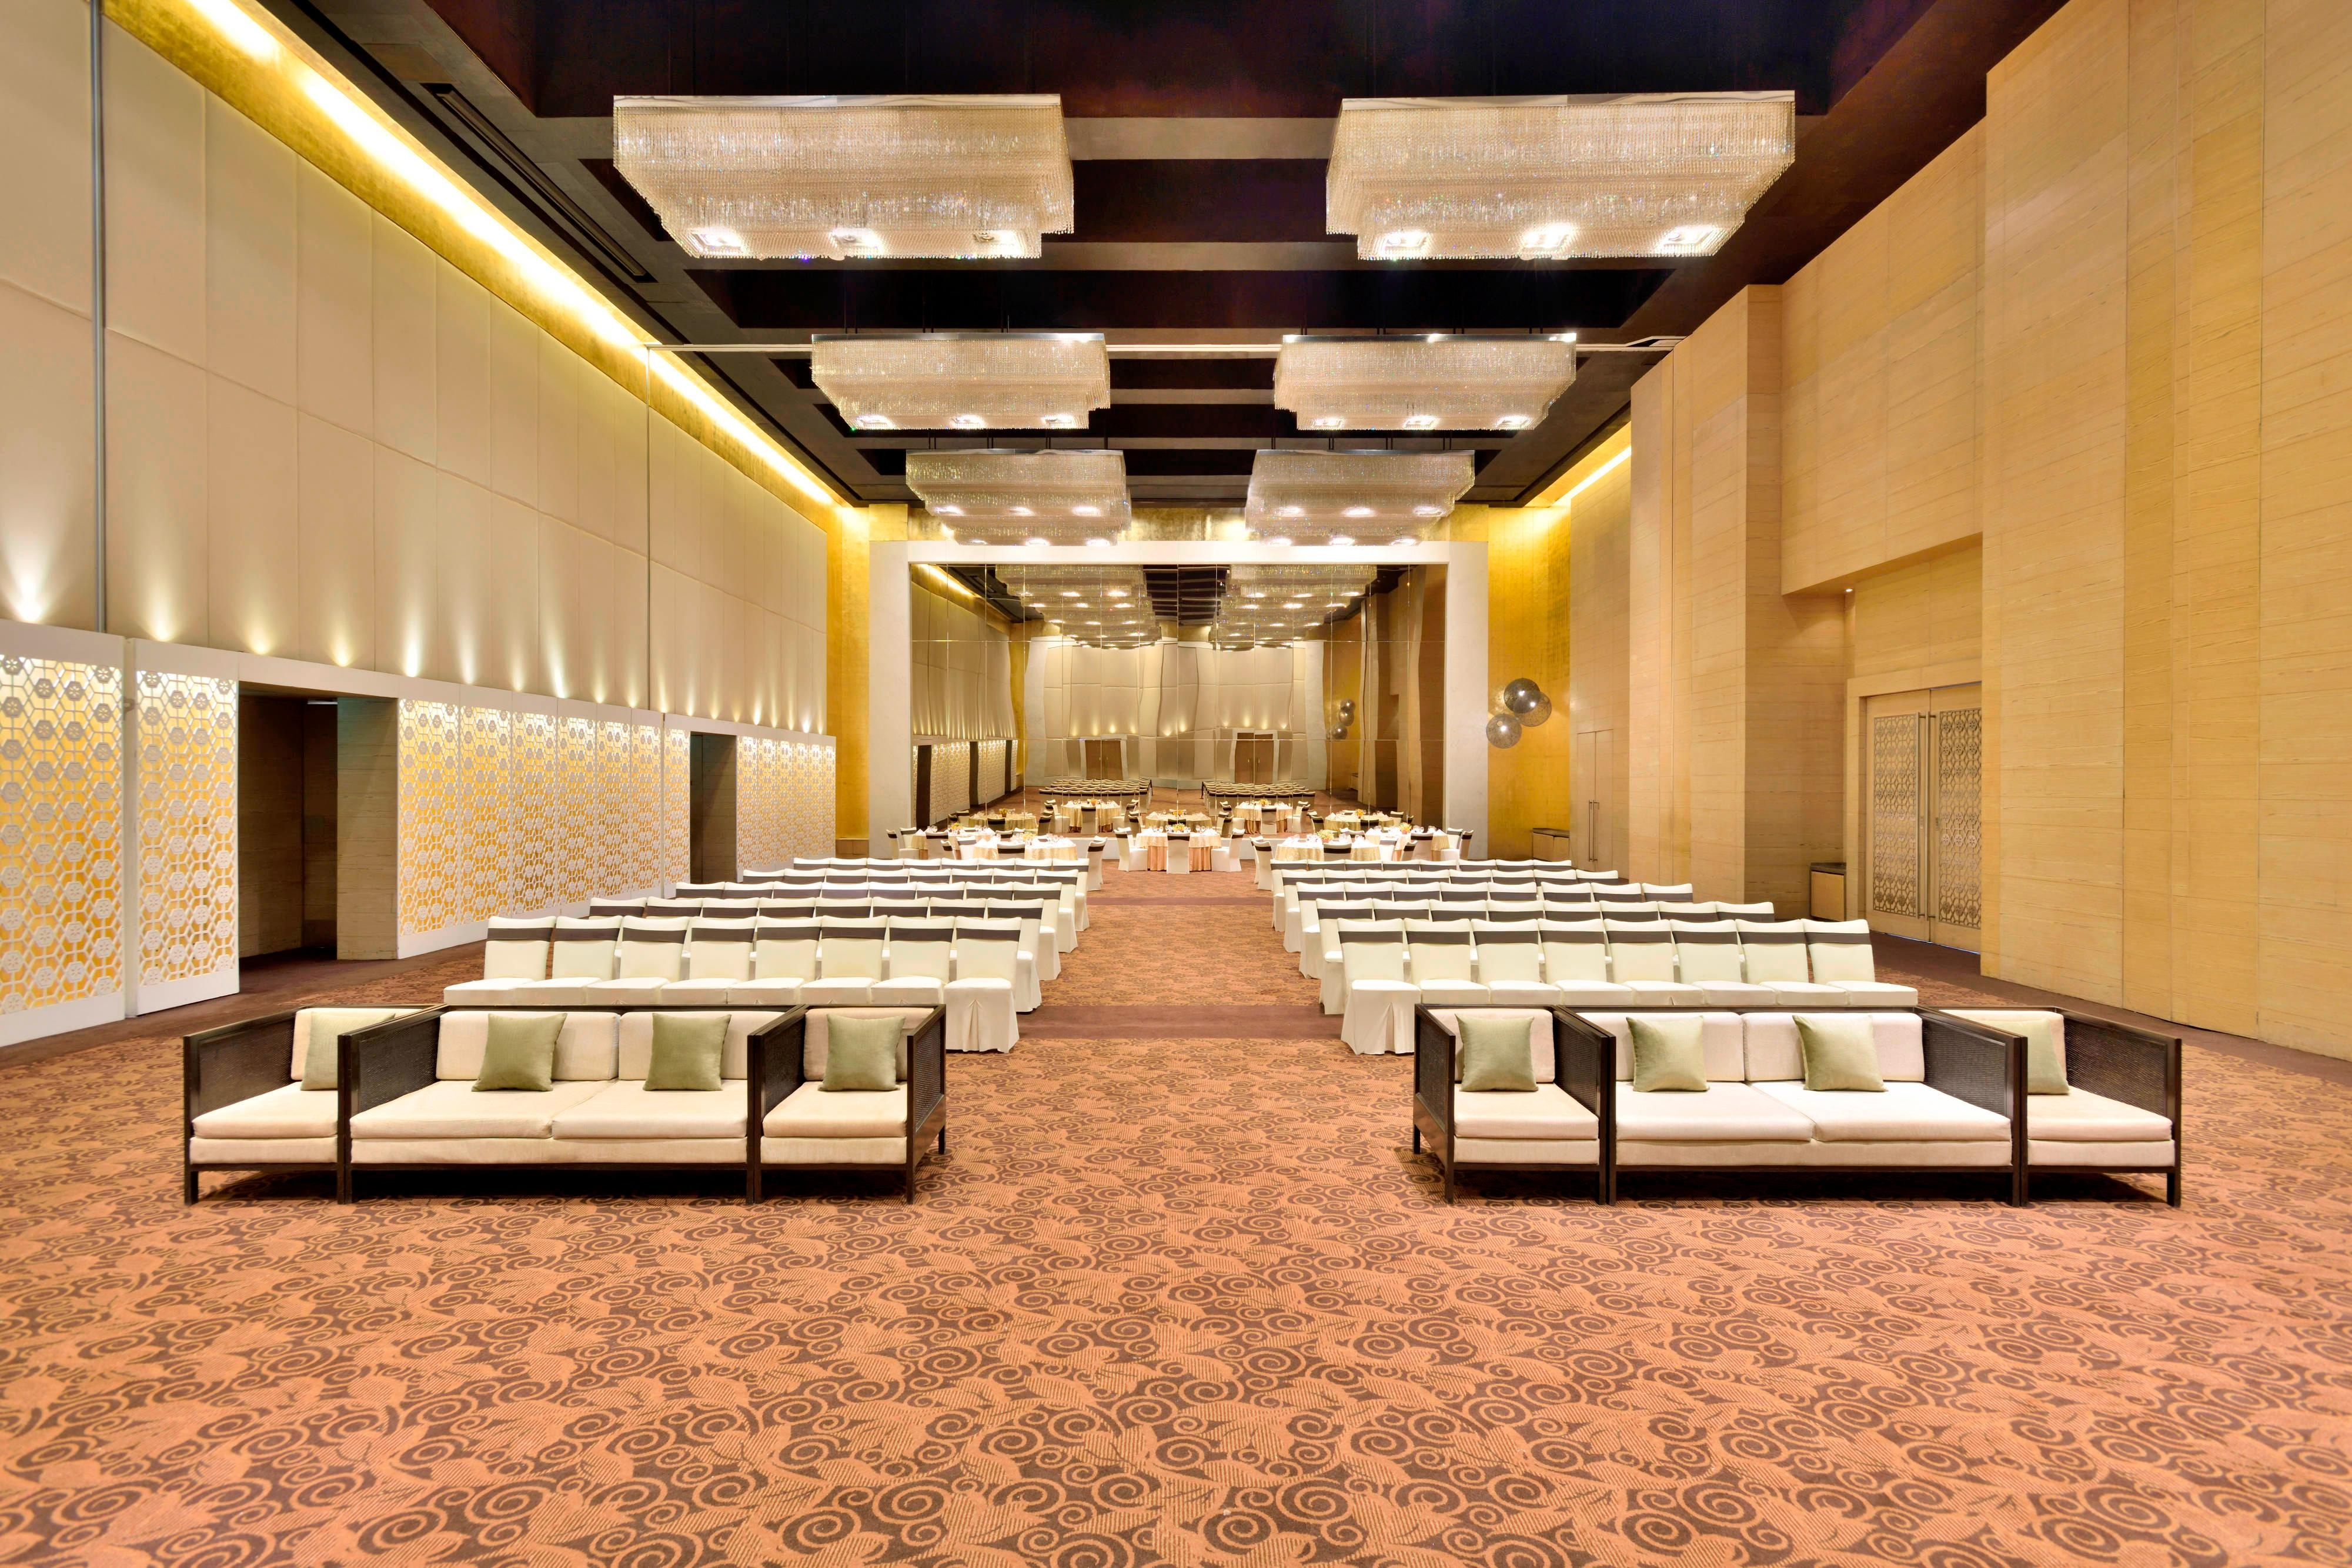 The Westin Ballroom Theatre-Style Meeting